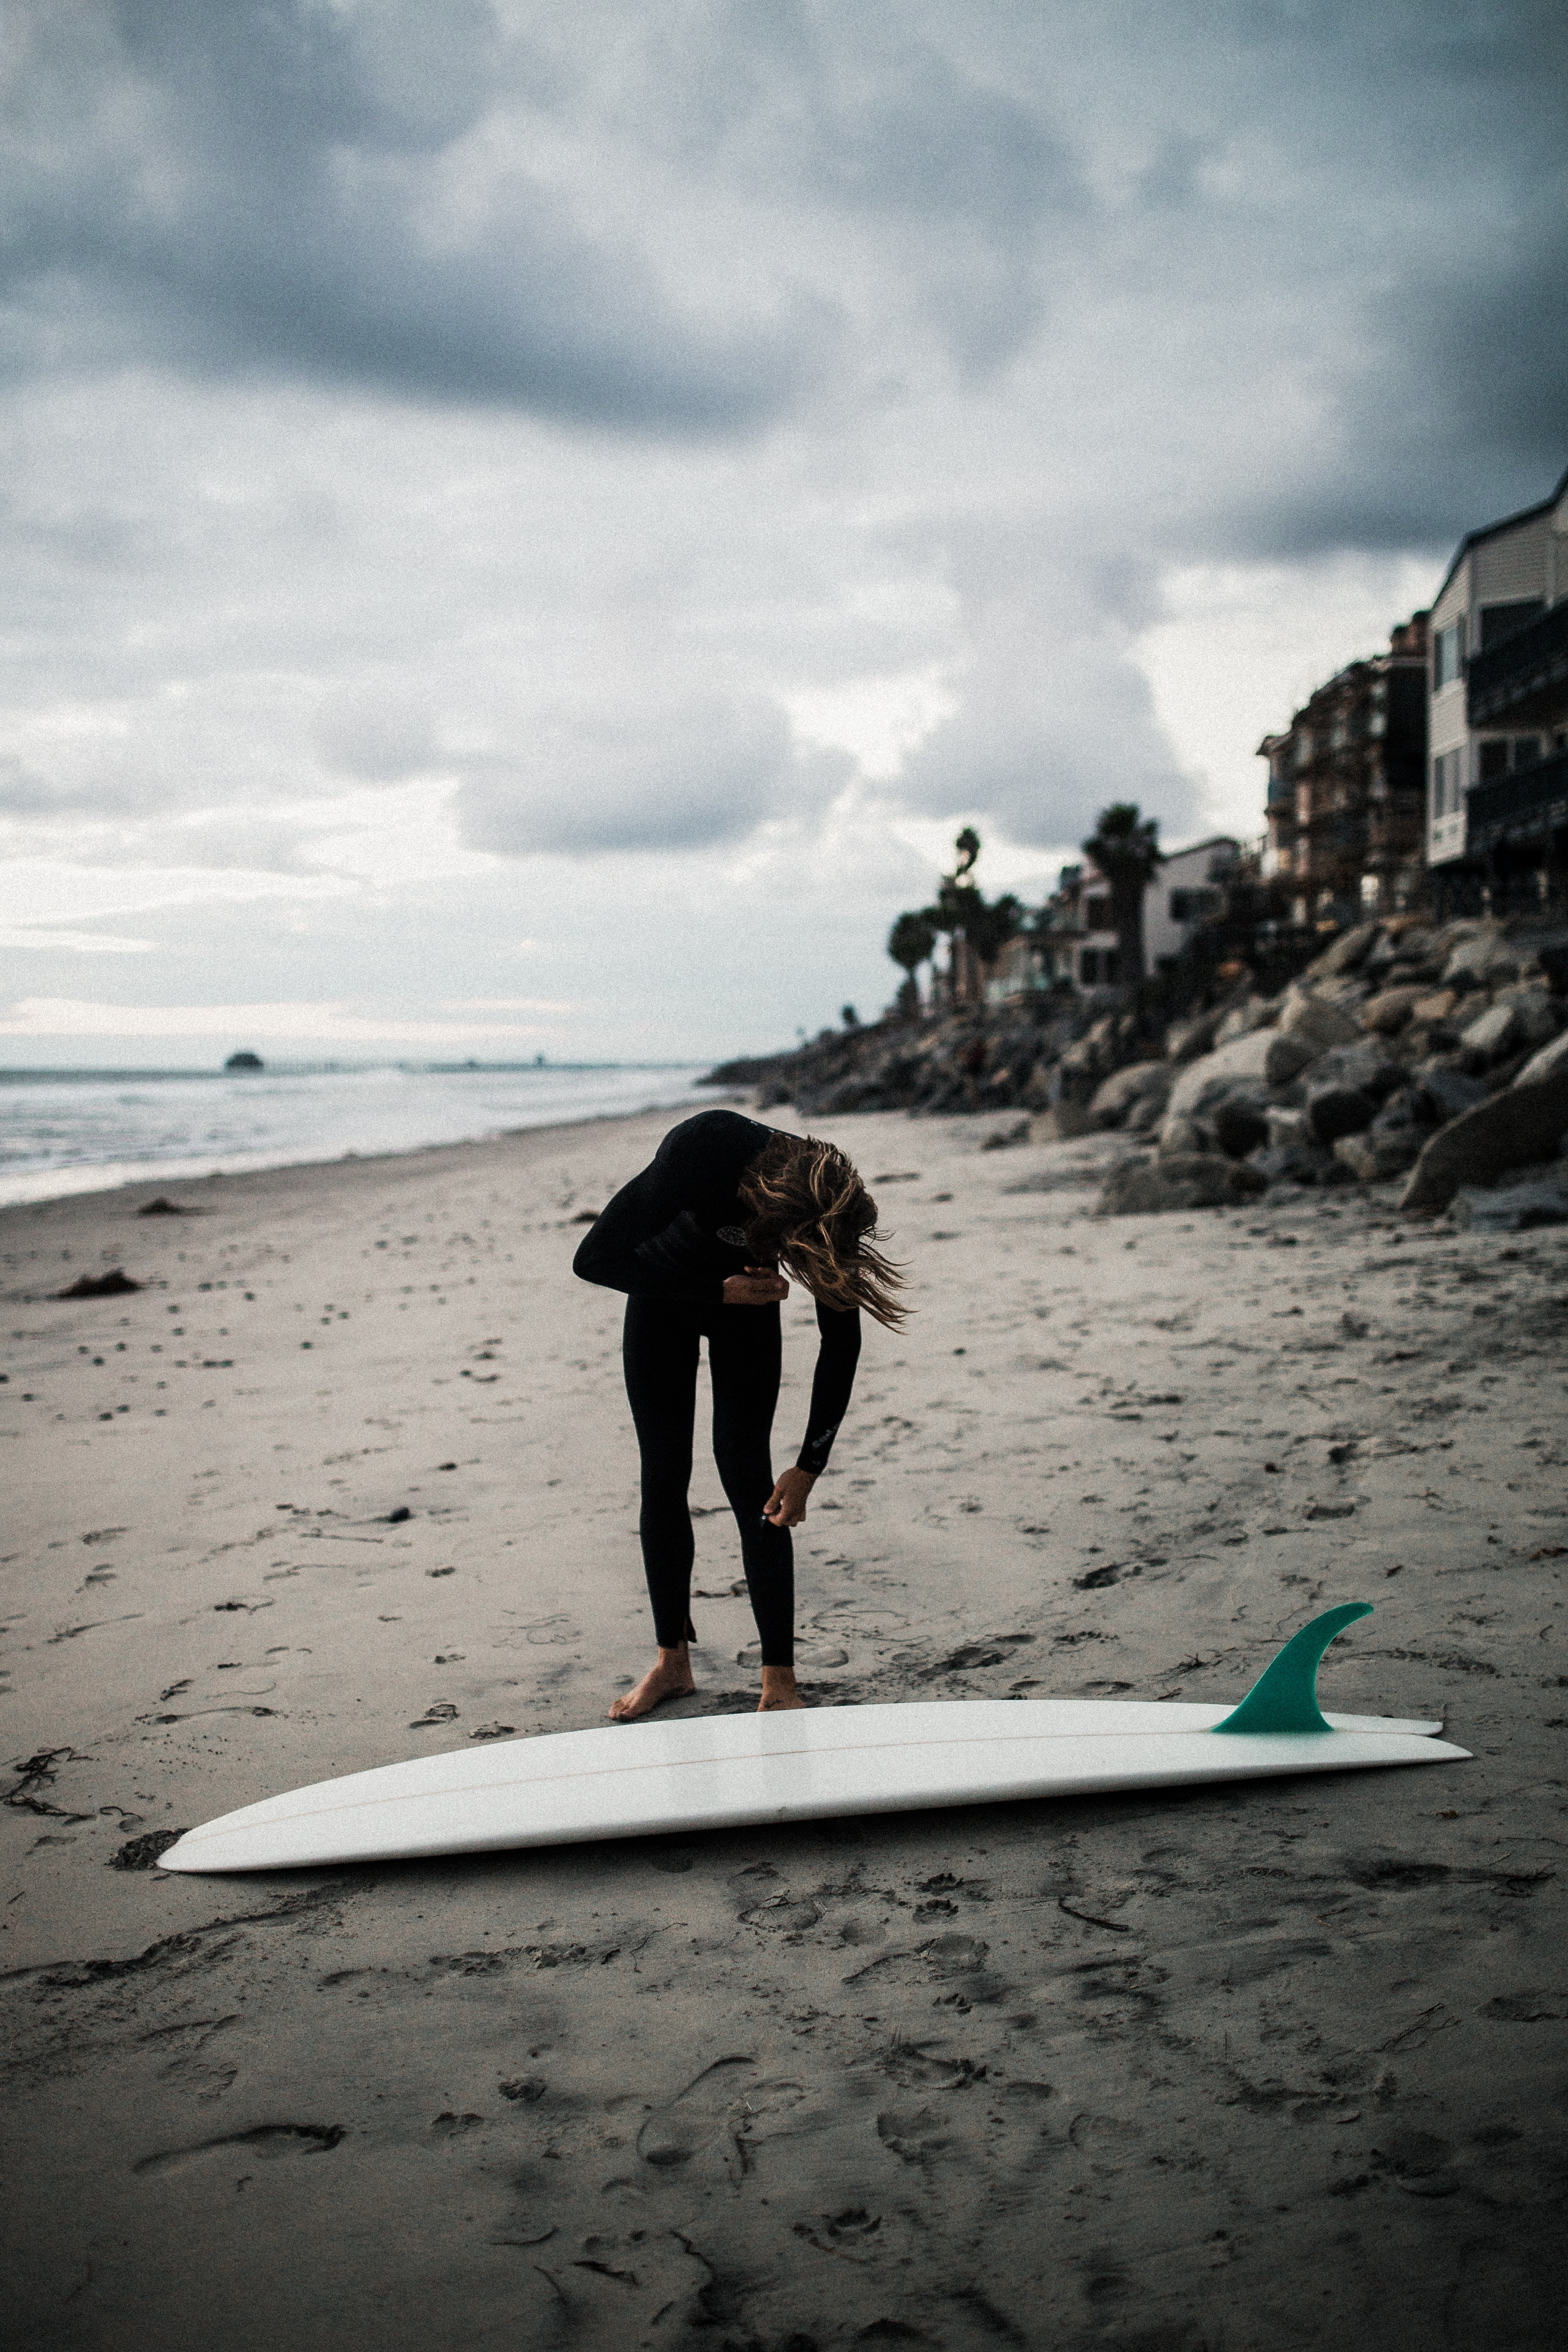 woman about to pick-up surfboard on beach